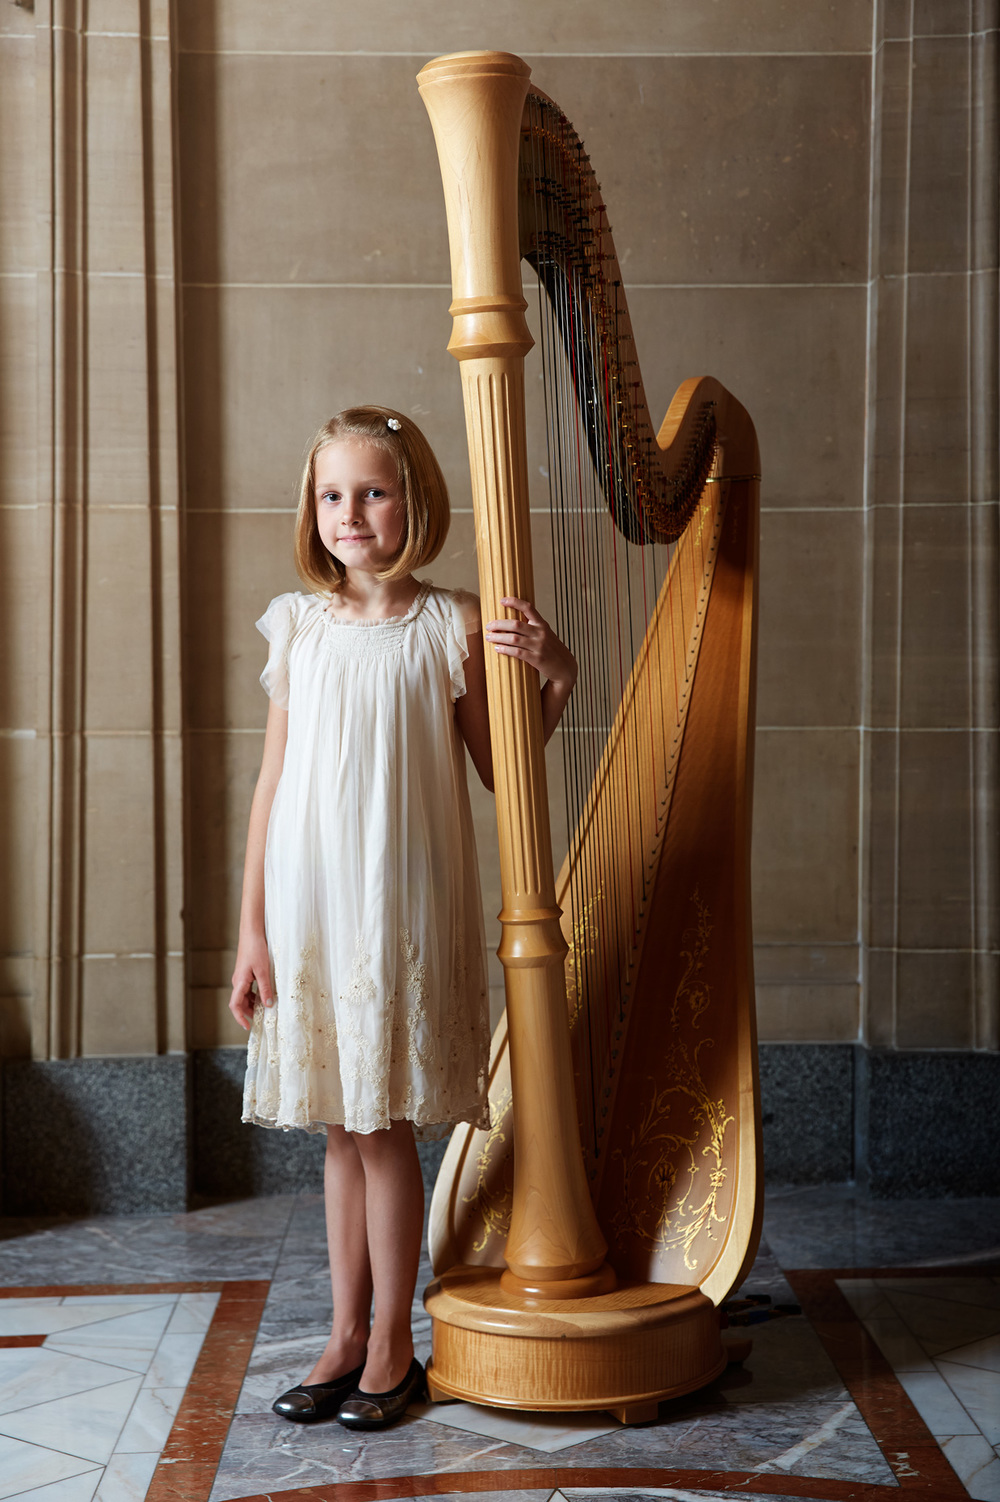 Portrait Photography Derek Israelsen Kid Harp